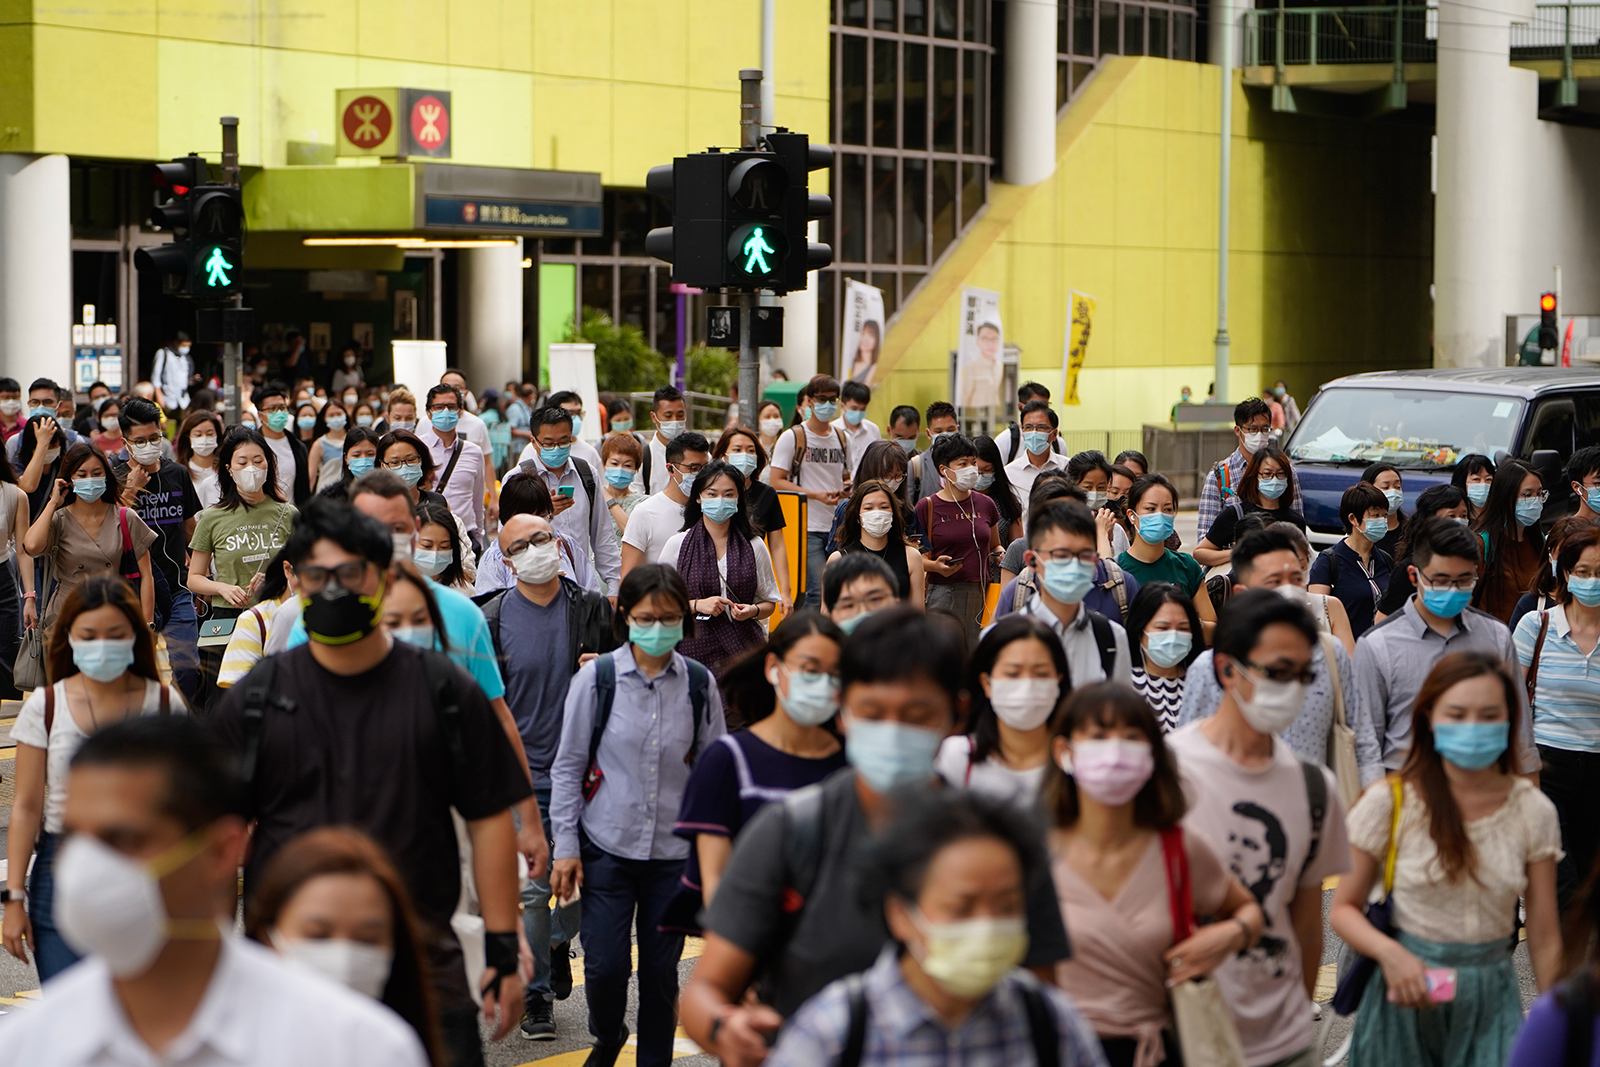 Pedestrians wearing protective masks walk across a road in Hong Kong, China, on July 10.